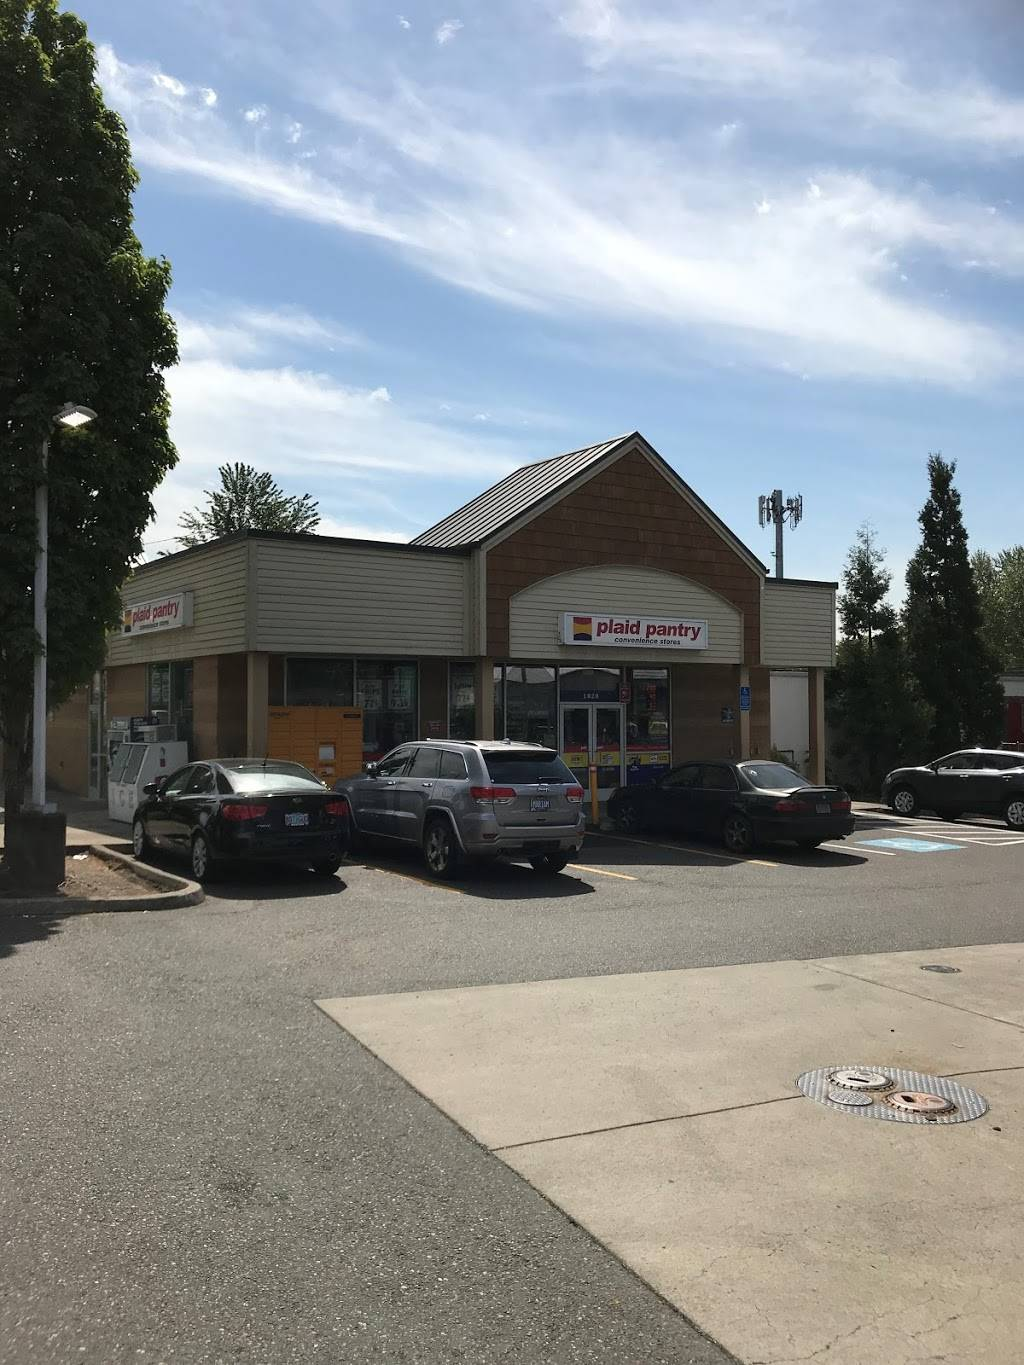 Plaid Pantry - convenience store  | Photo 1 of 9 | Address: 1020 N Marine Dr, Portland, OR 97217, USA | Phone: (503) 517-0457